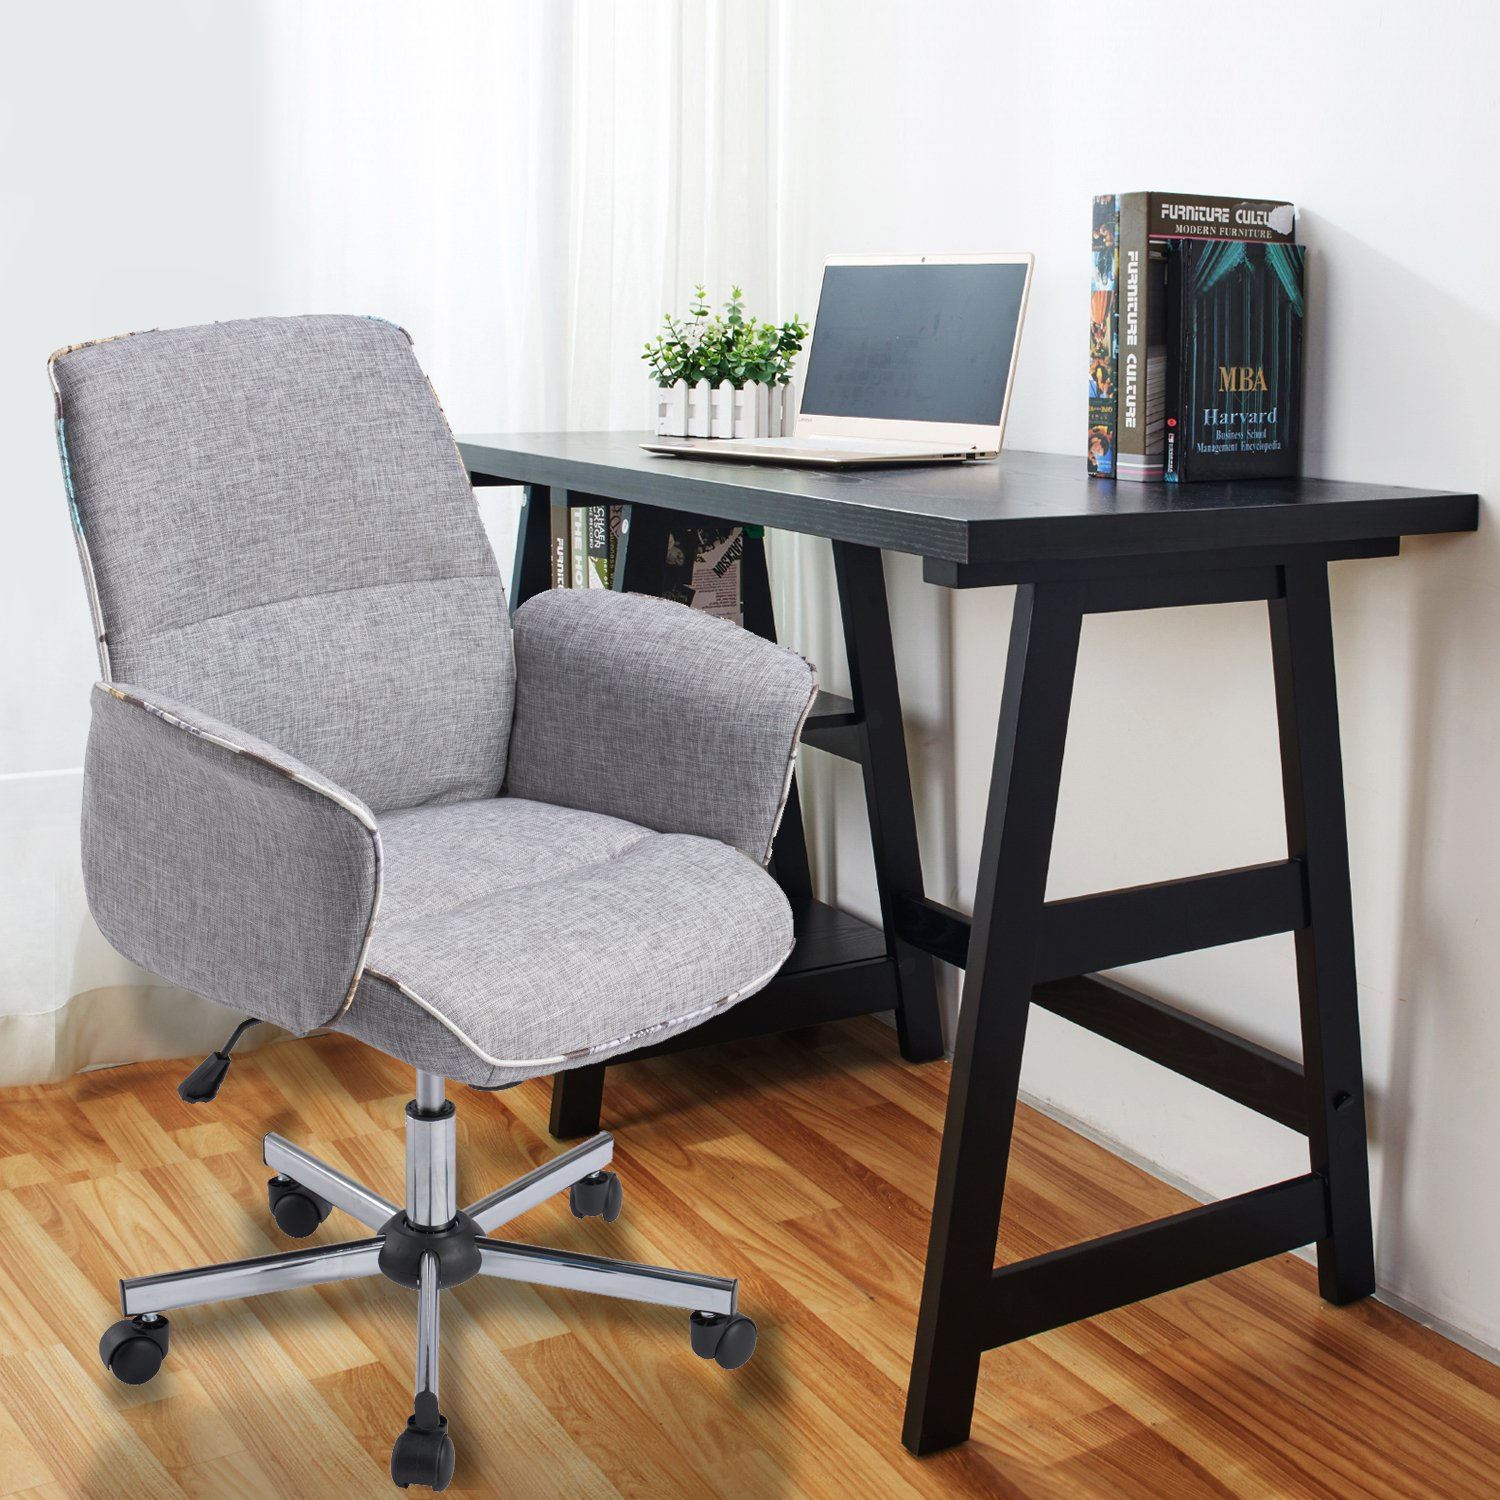 Amazon Home fice Chair Height Adjustable Task Chair Fabric